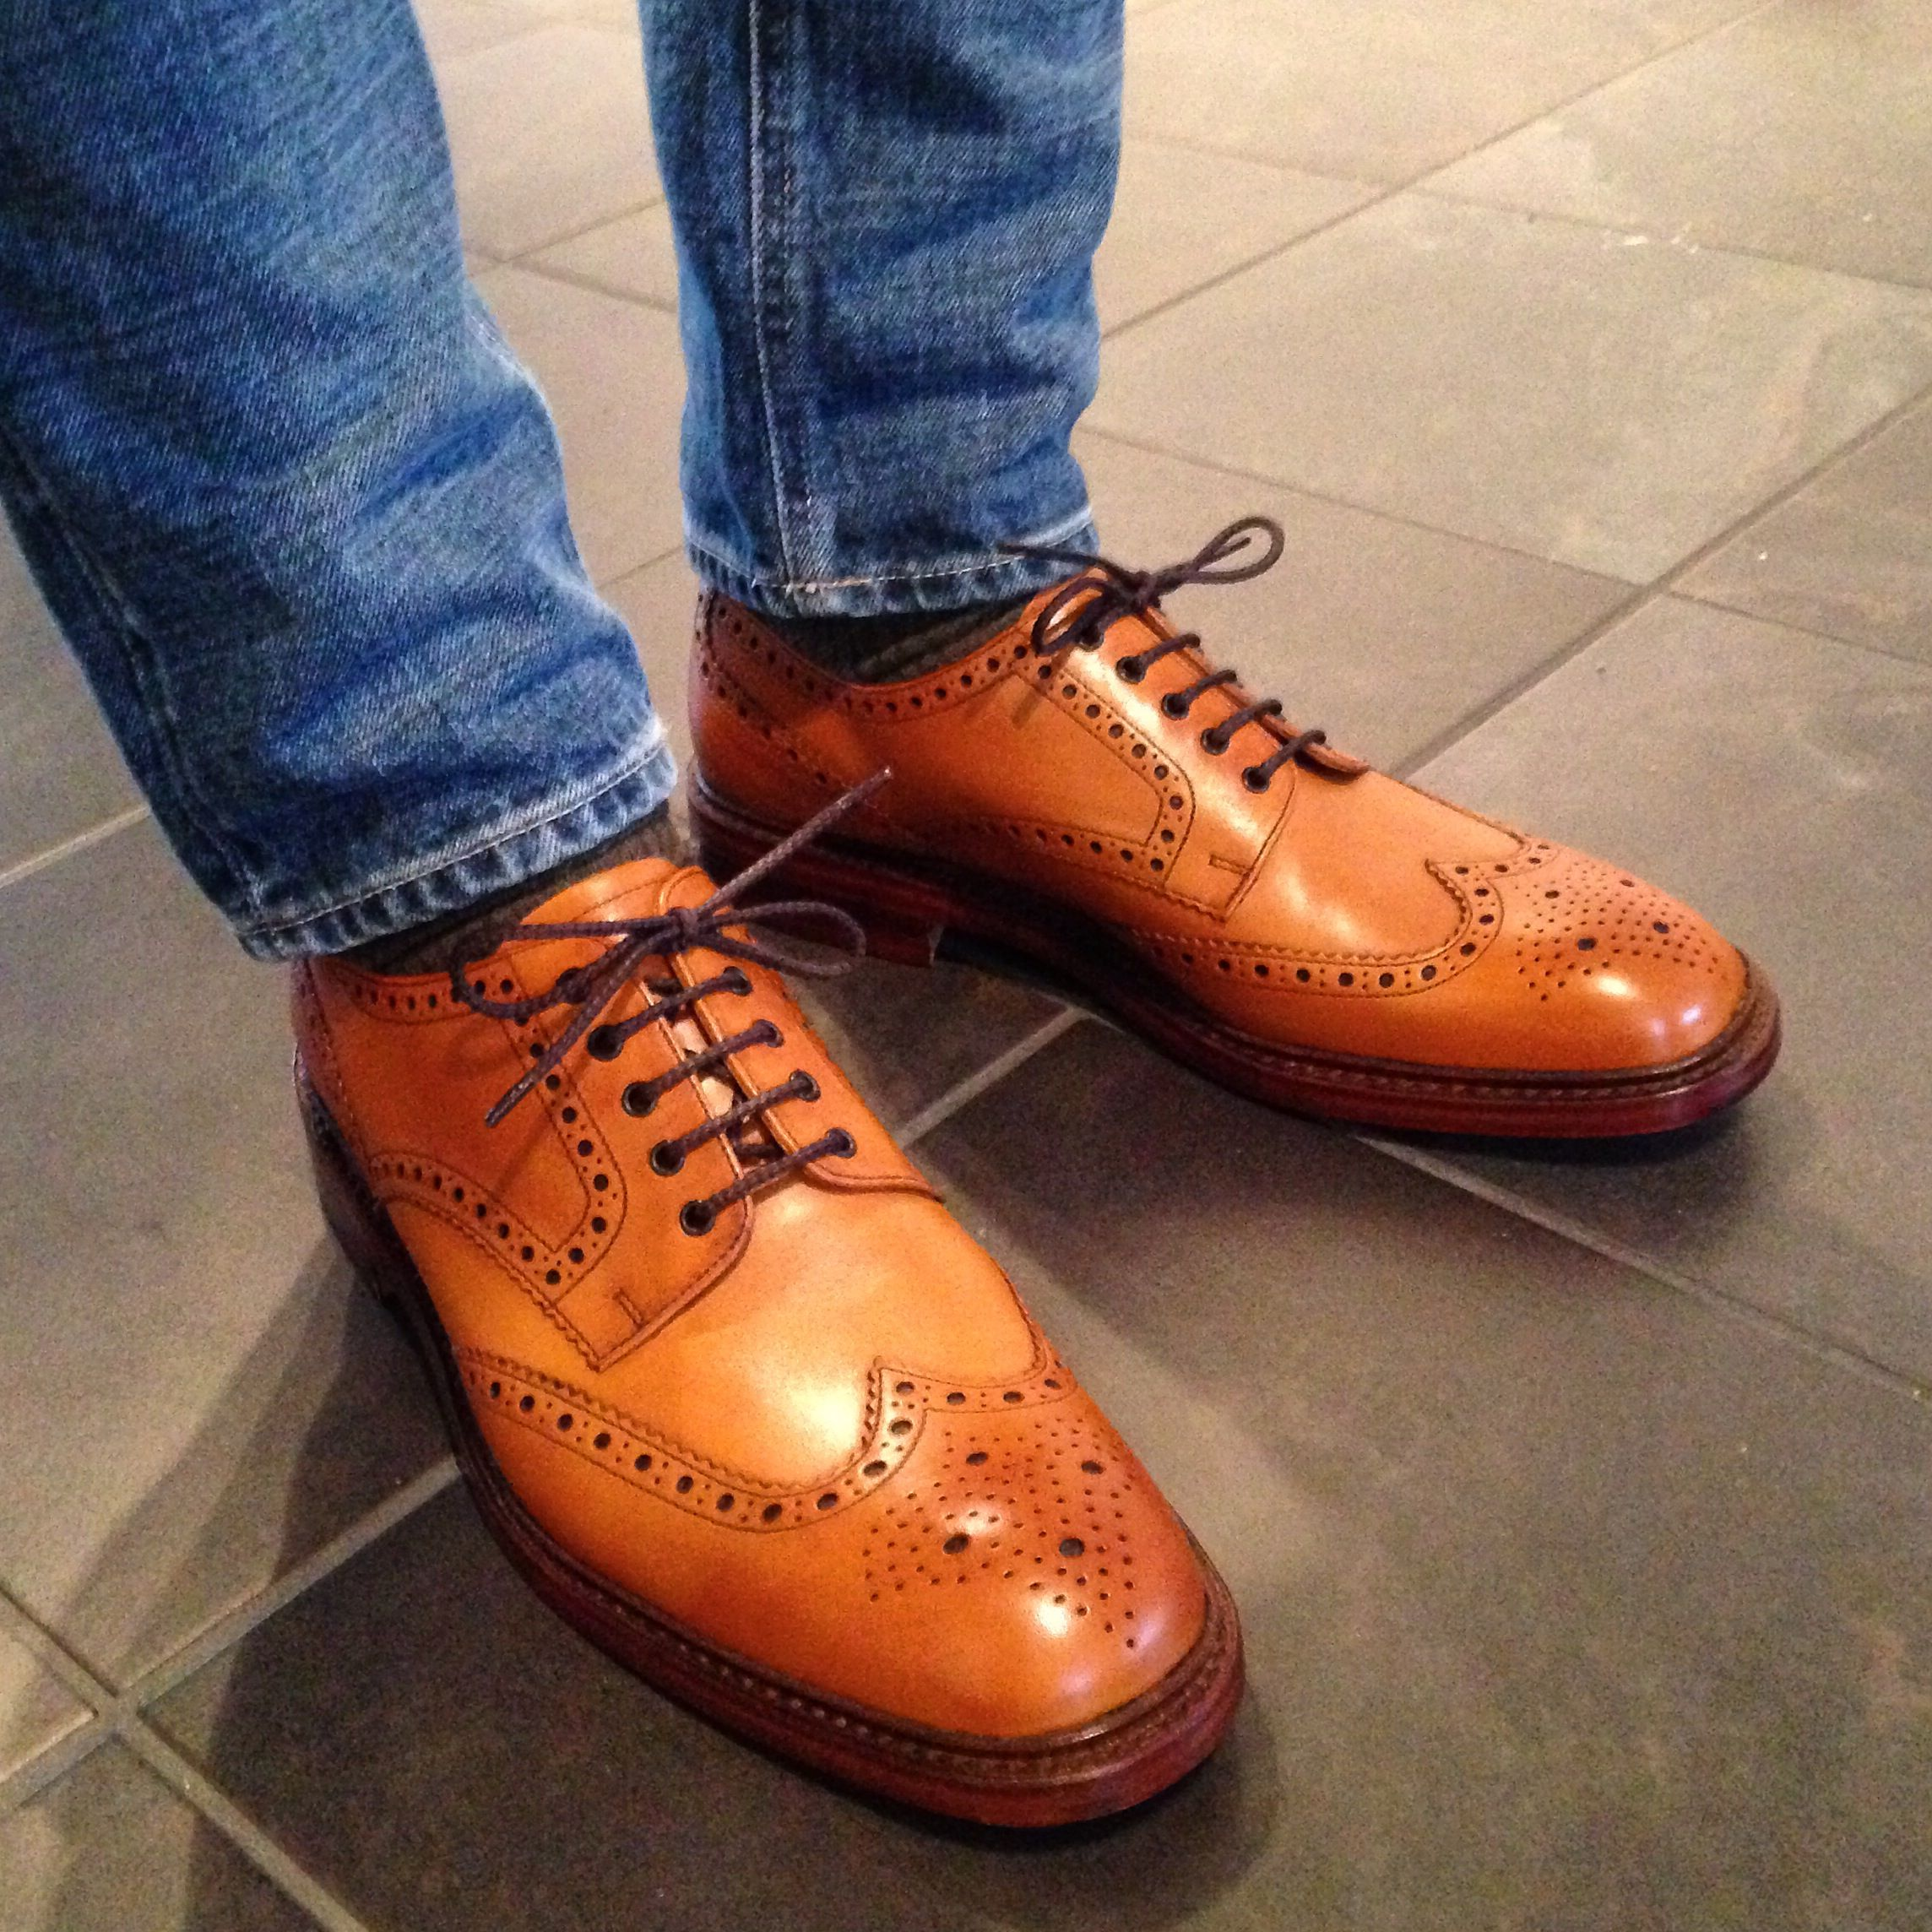 My favourite Shoes Loake Chester 1880